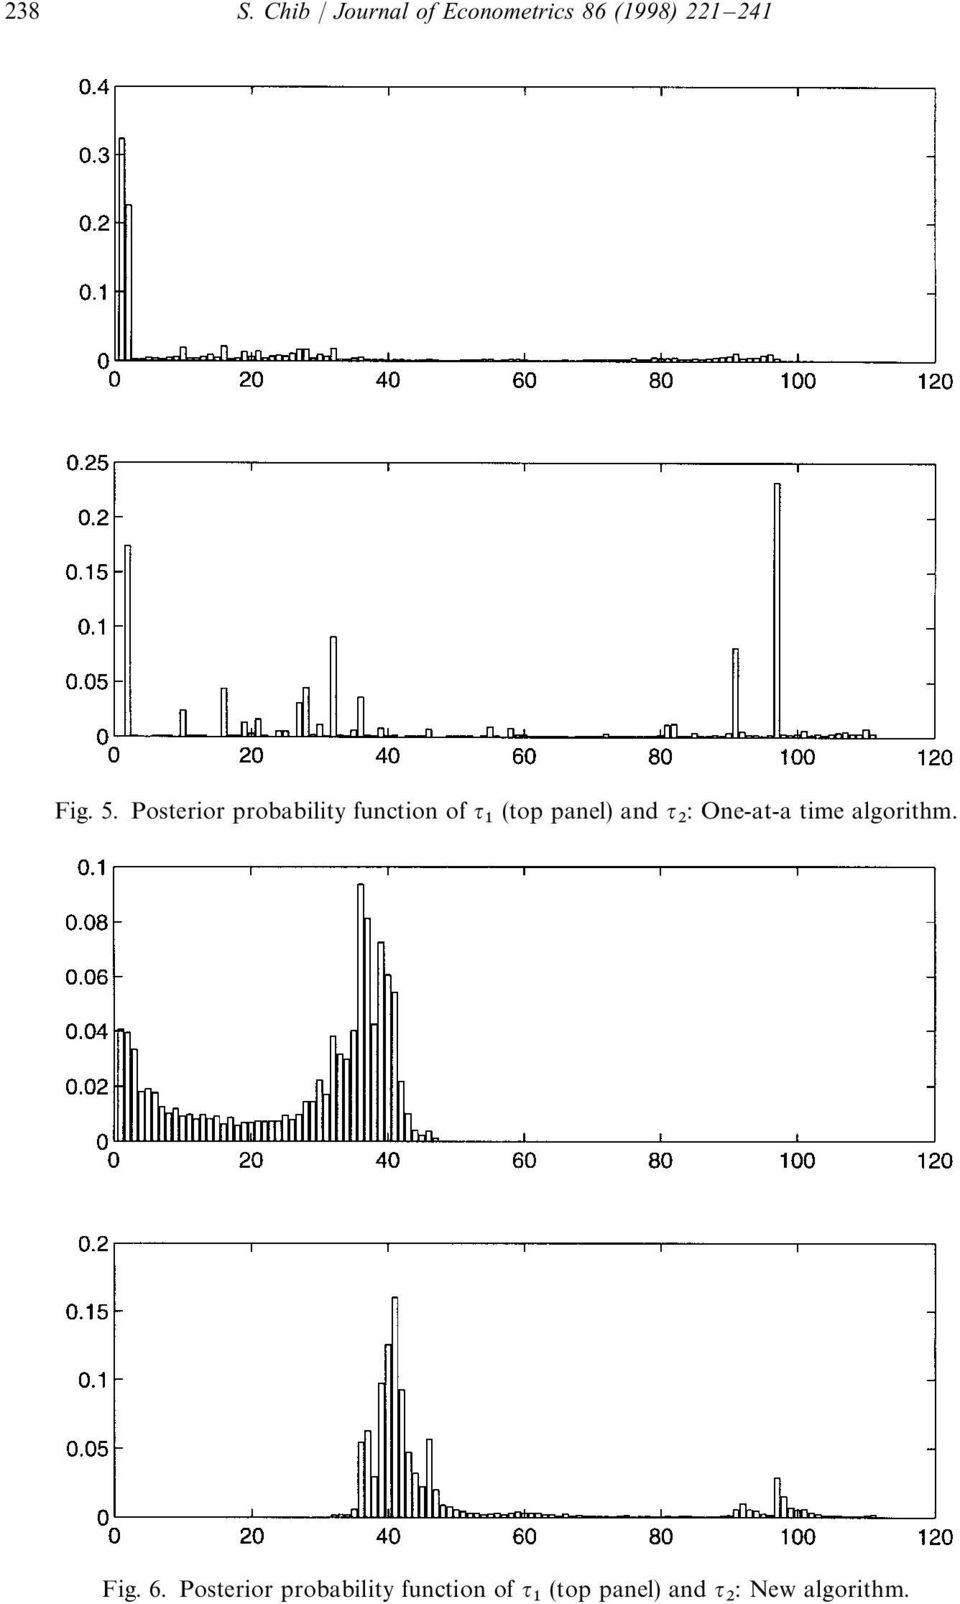 Posterior probability function of τ (top panel) and τ :